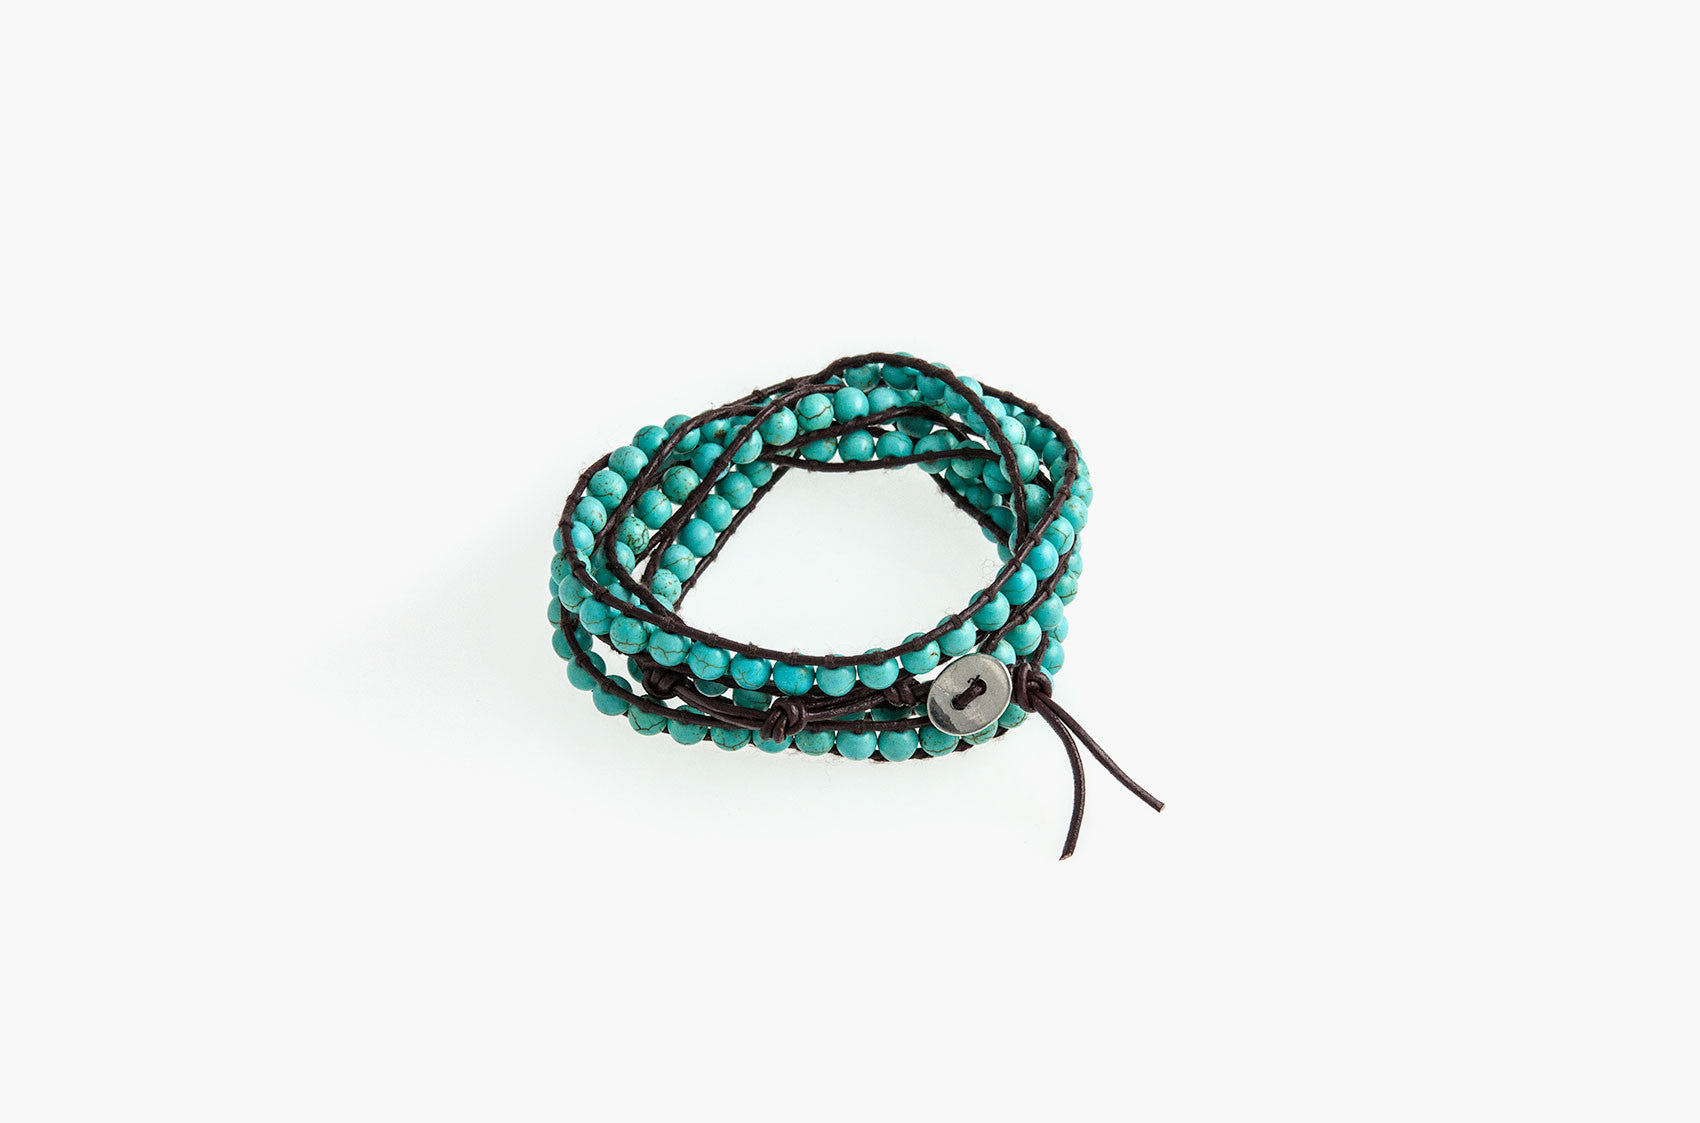 Turquoise wrap bracelet with brown leather